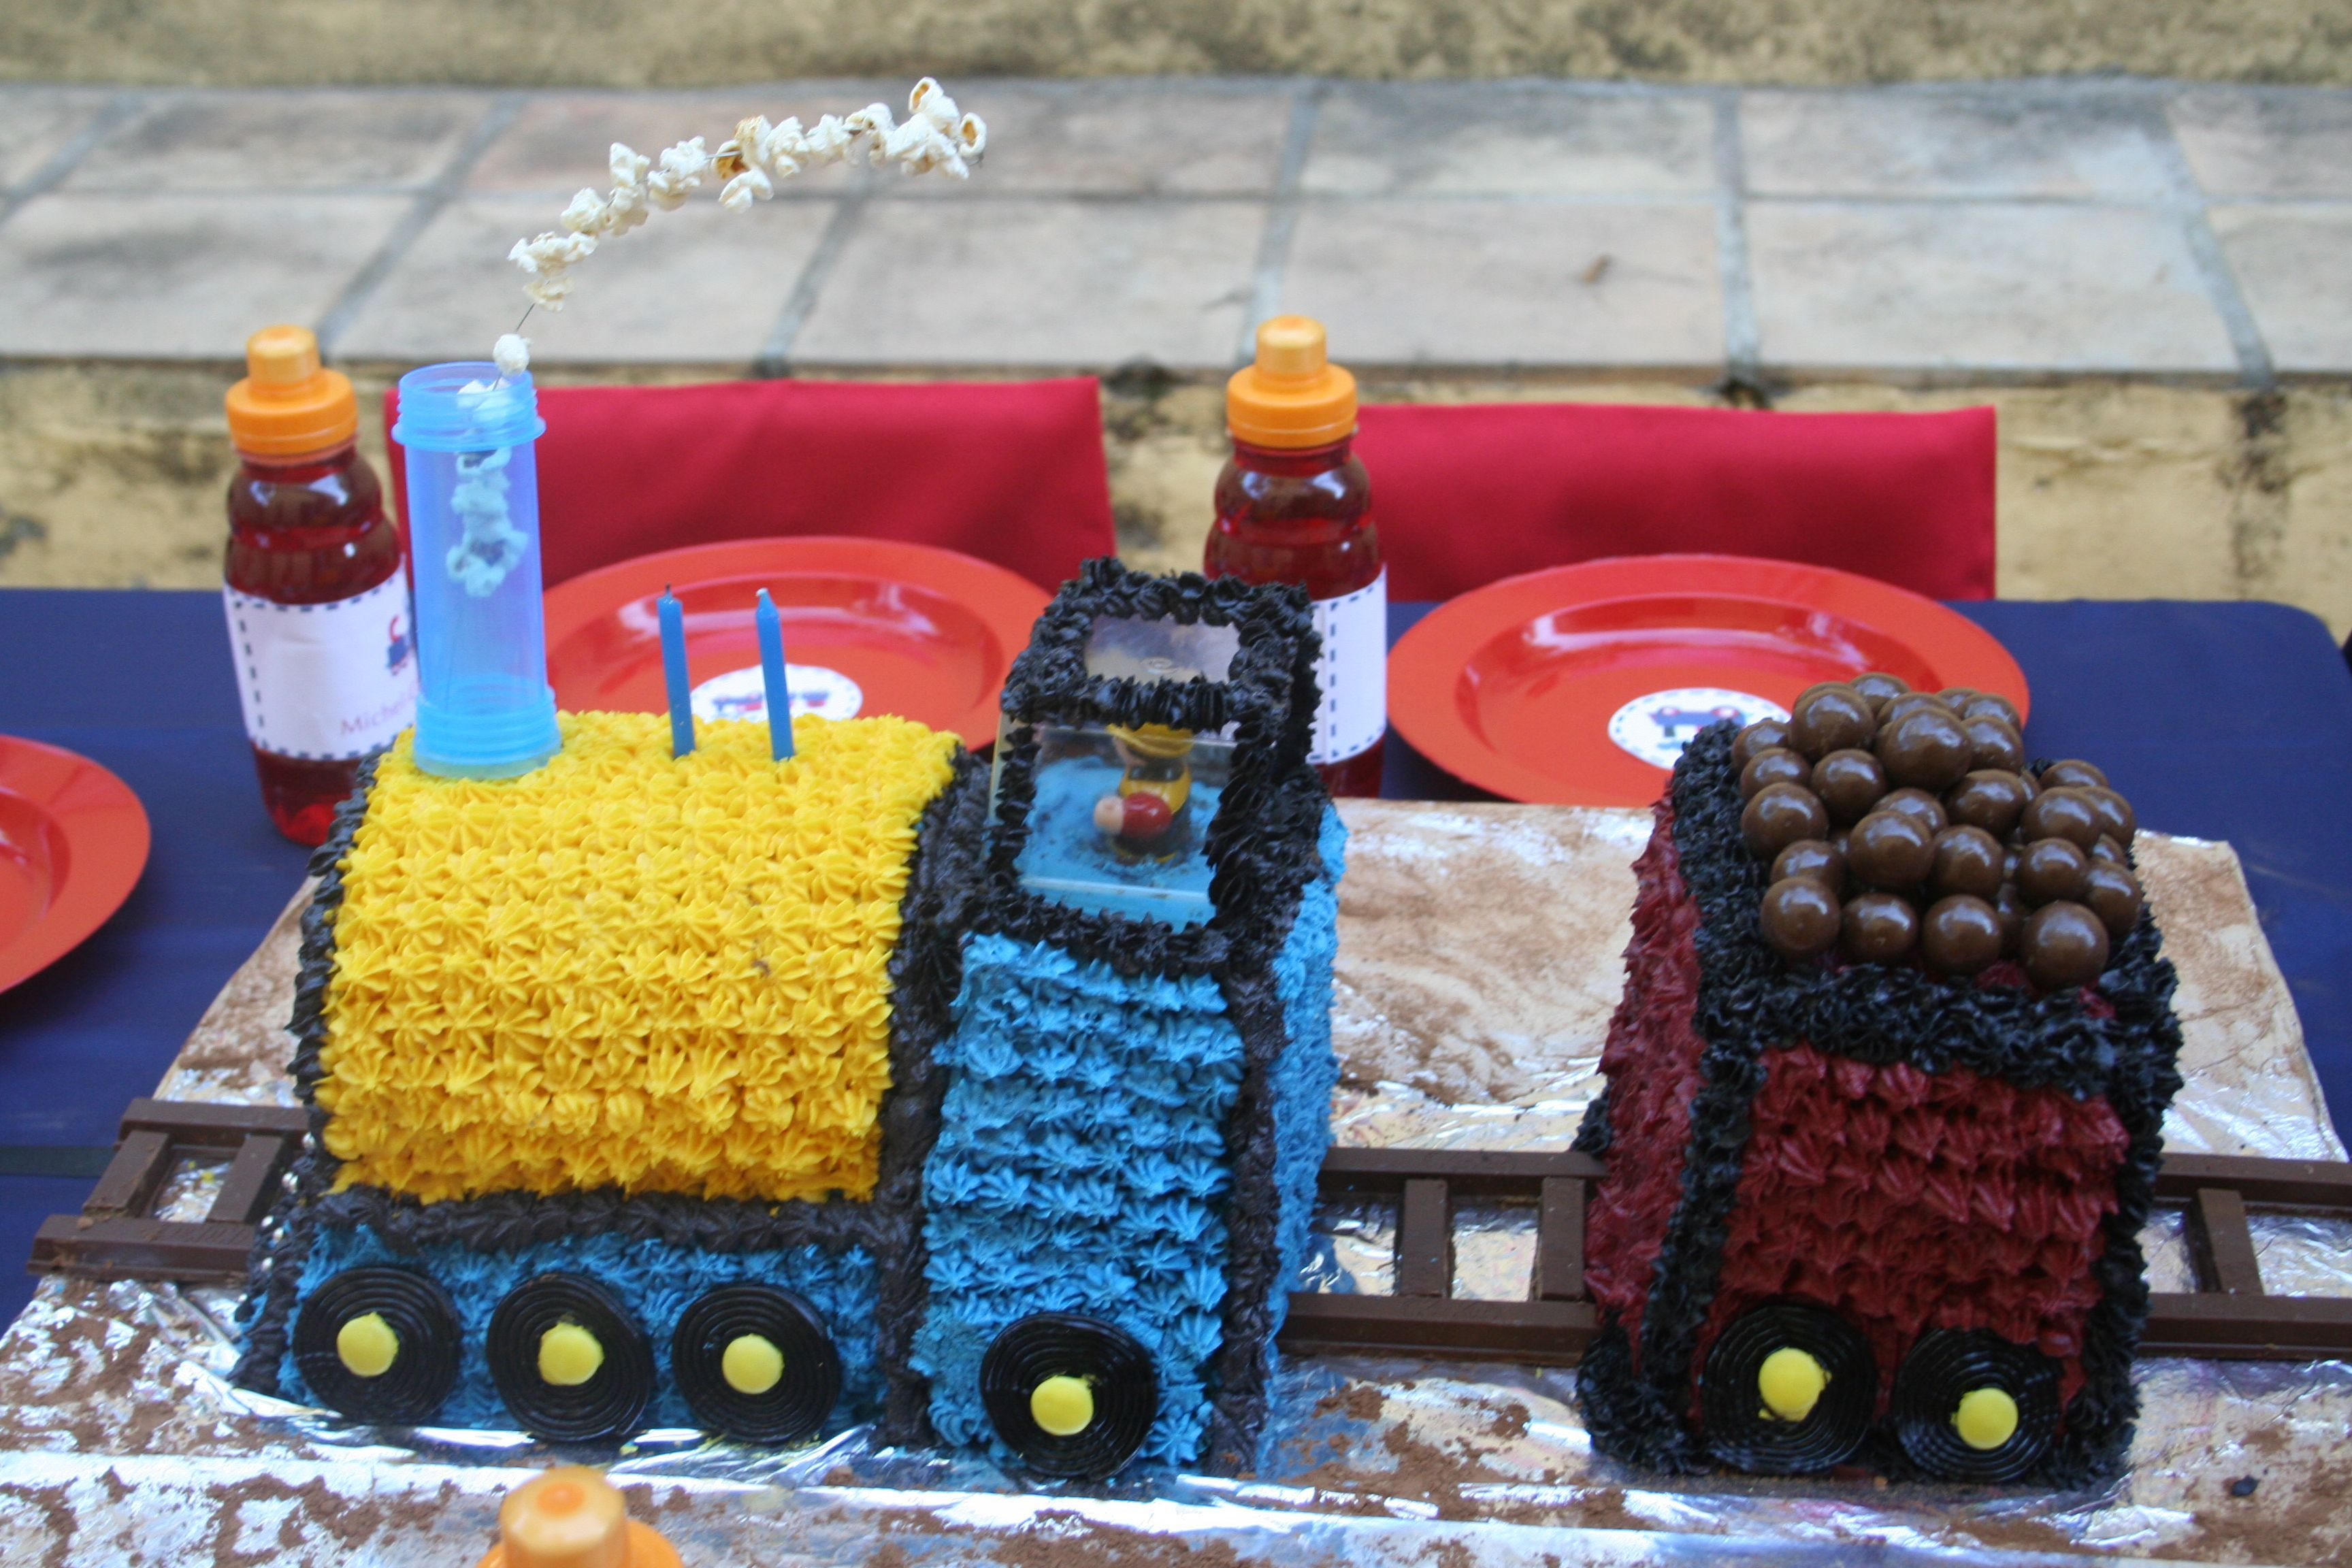 Cake and carriage